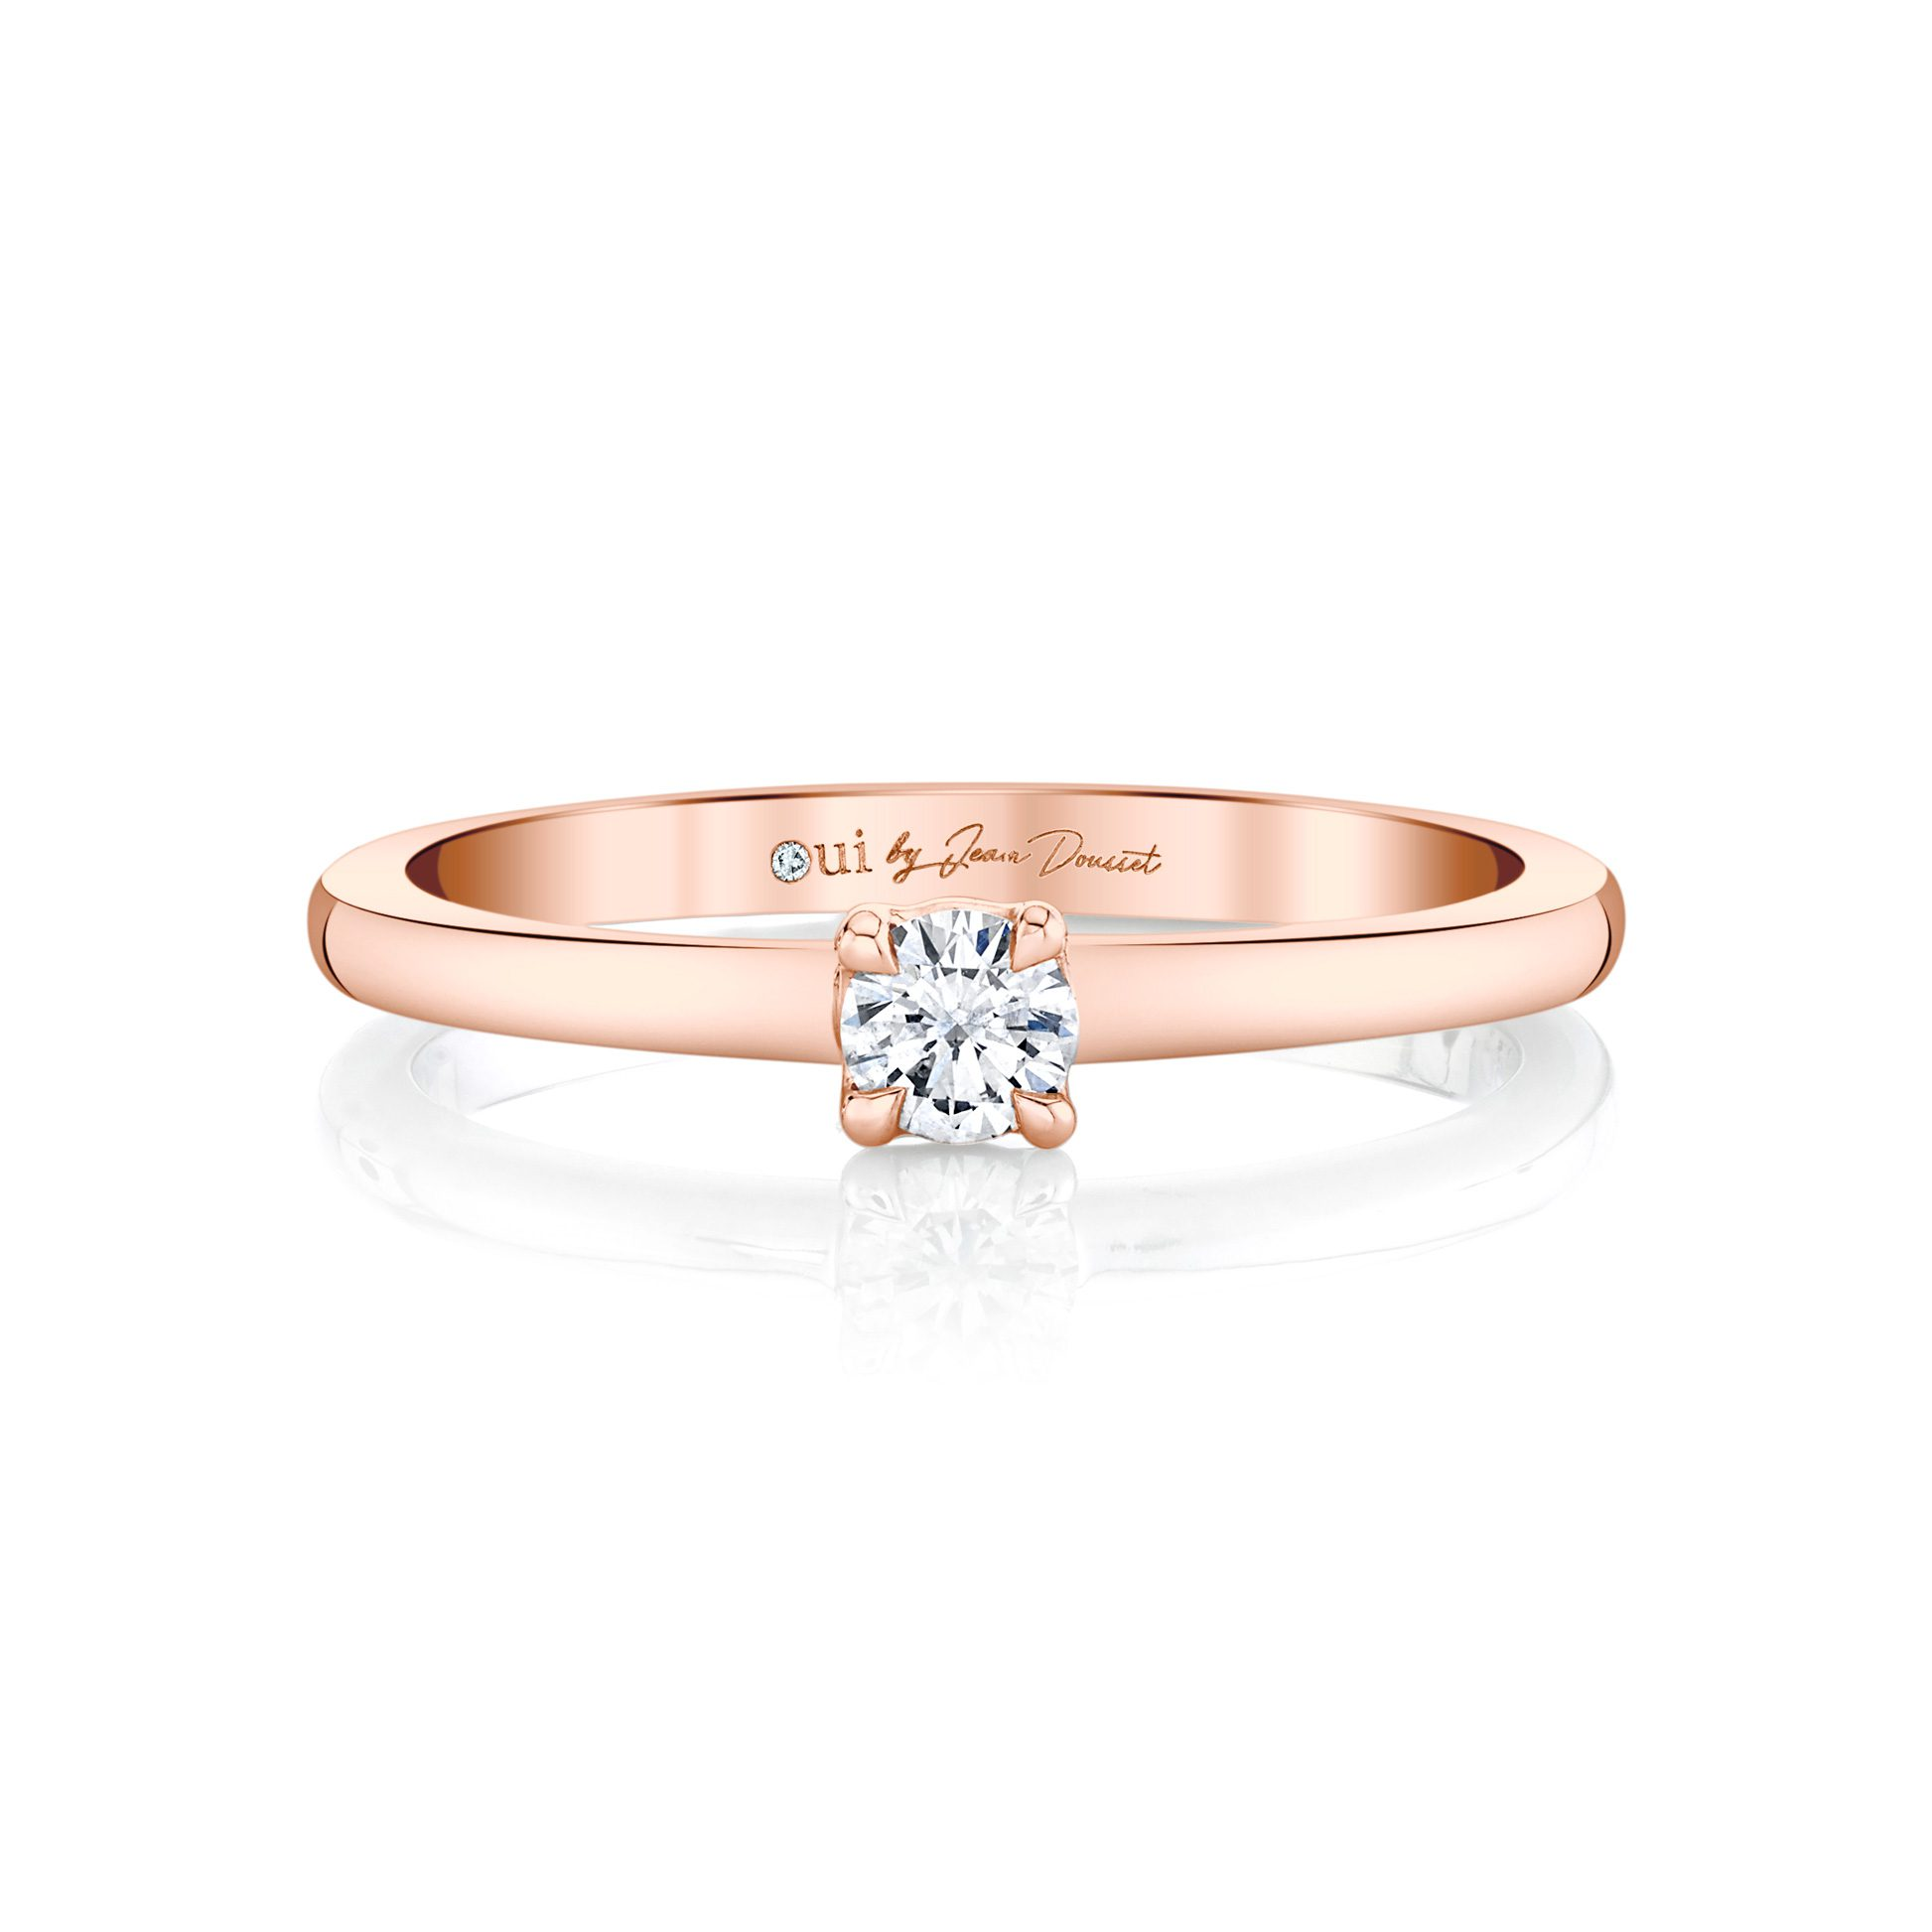 La Petite Round Brilliant Diamond Wedding Band in 18k Rose Gold Front View by Oui by Jean Dousset